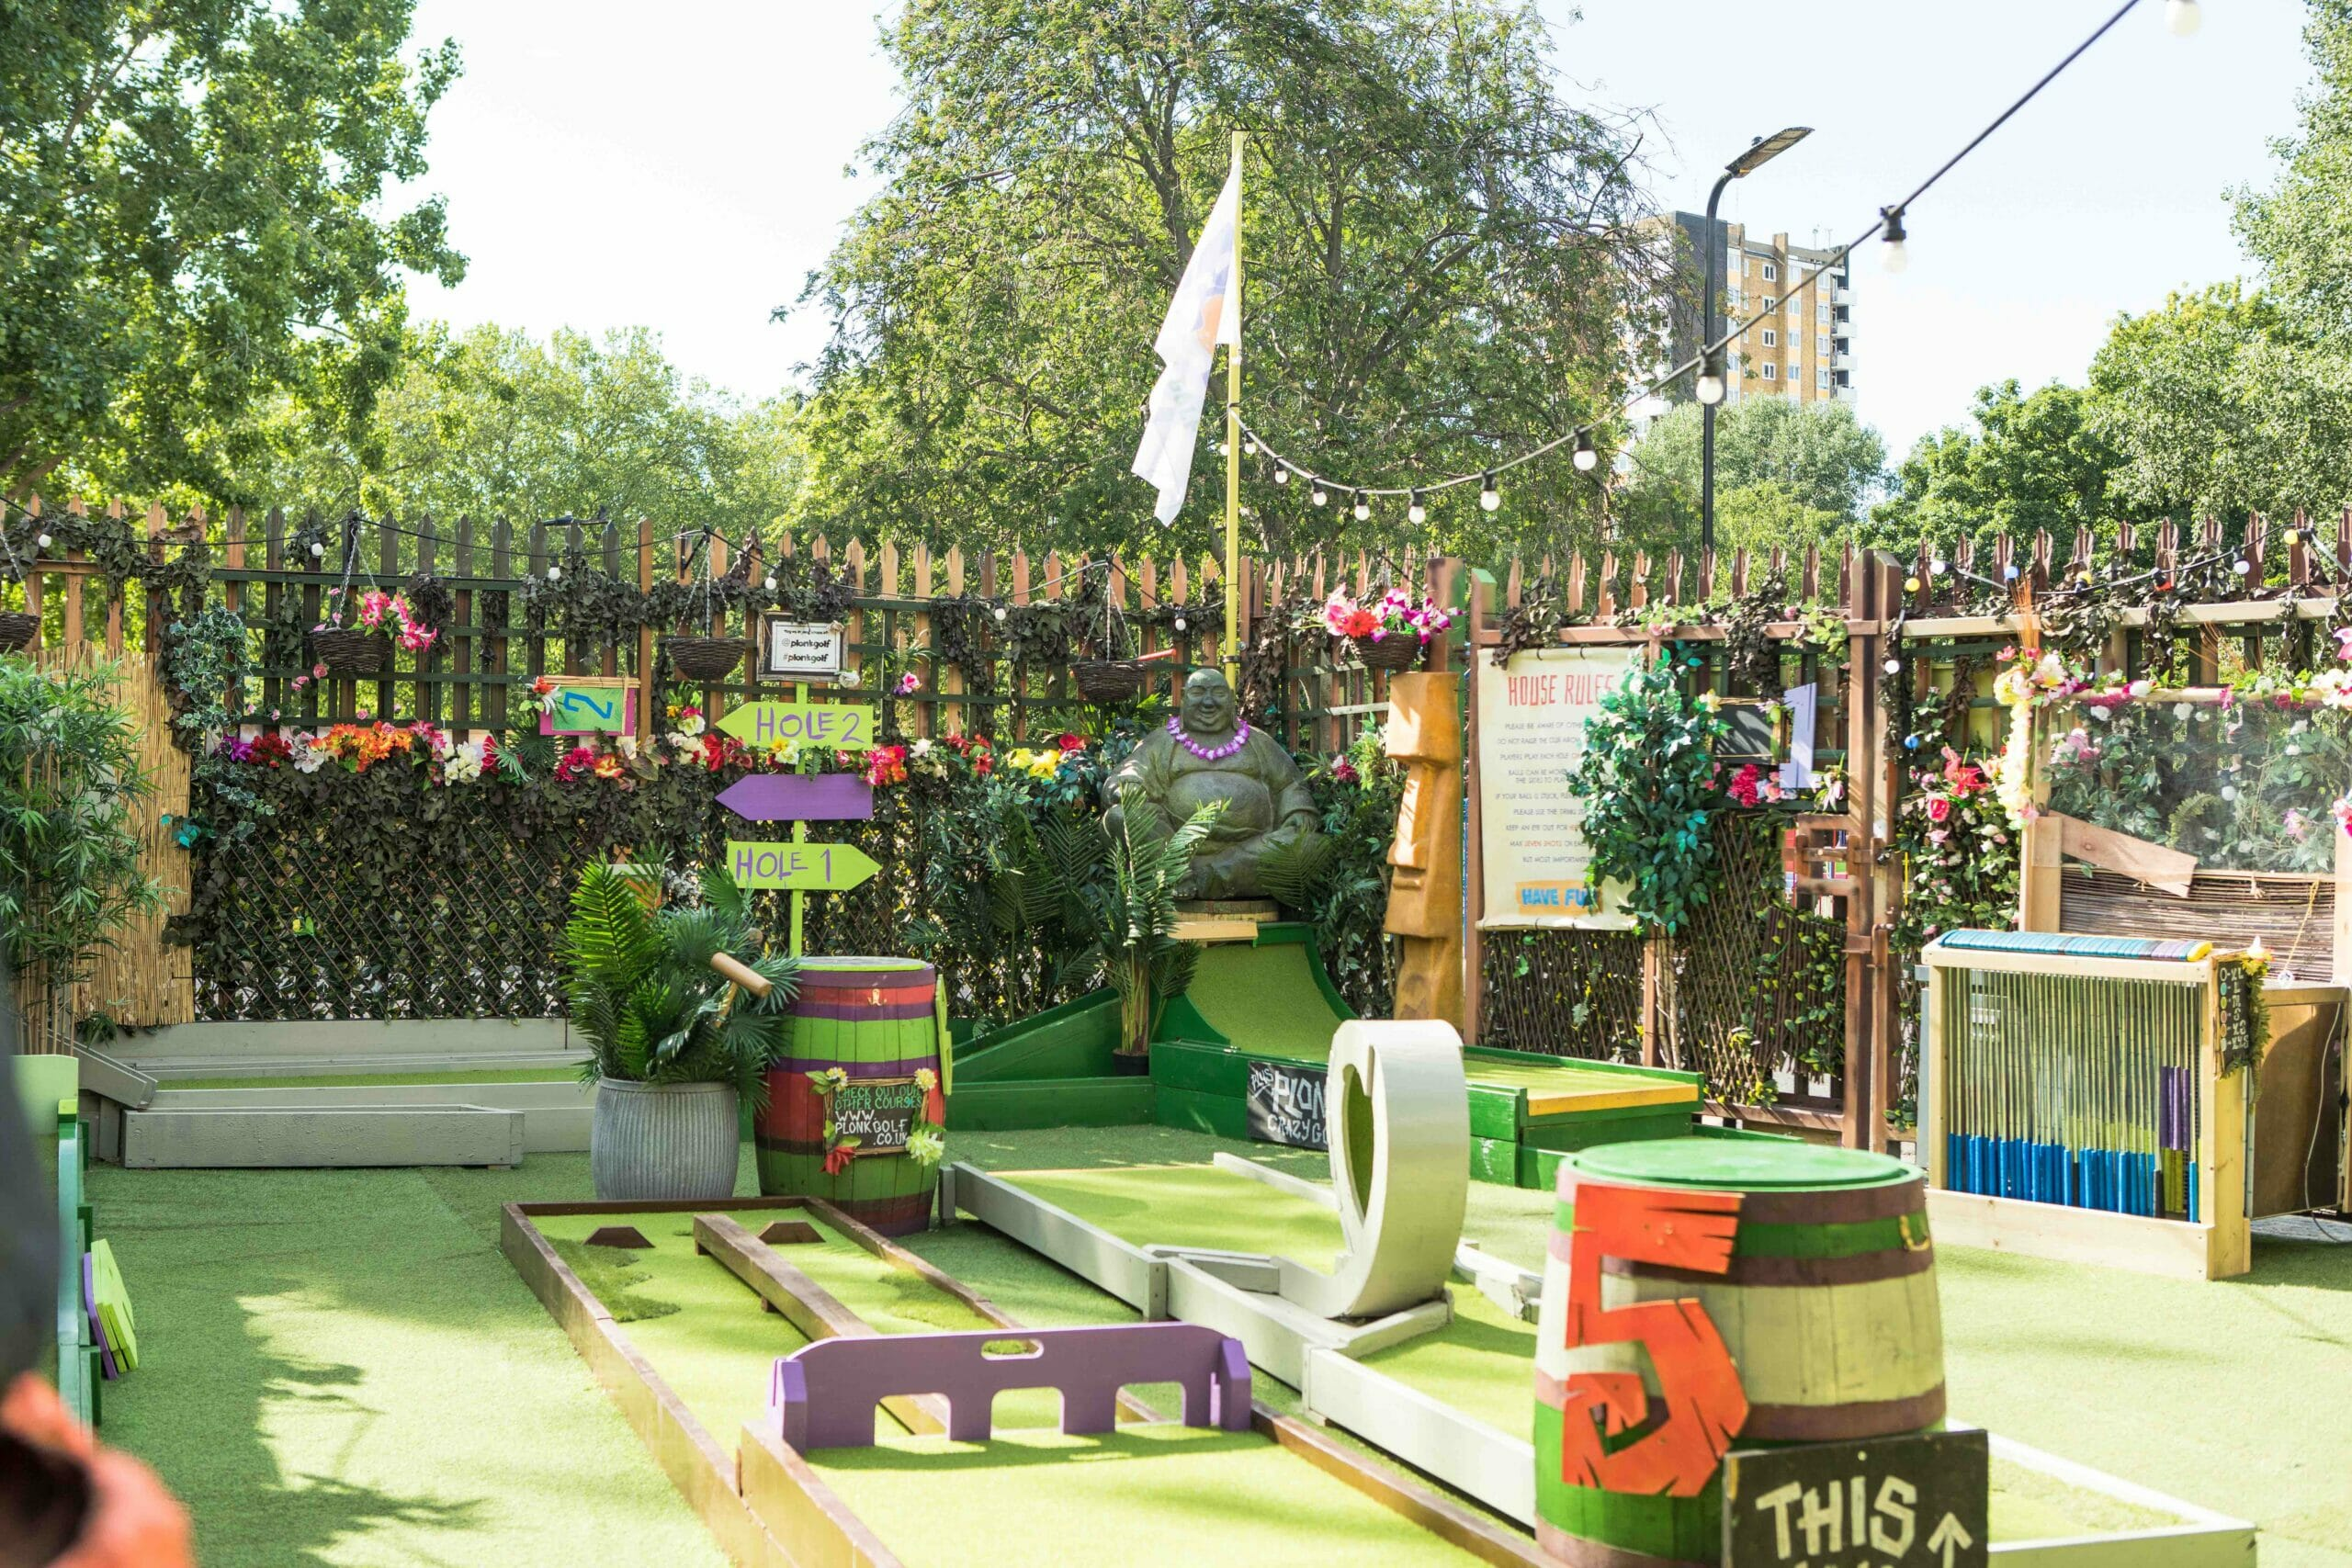 Plonk outdoor crazy golf